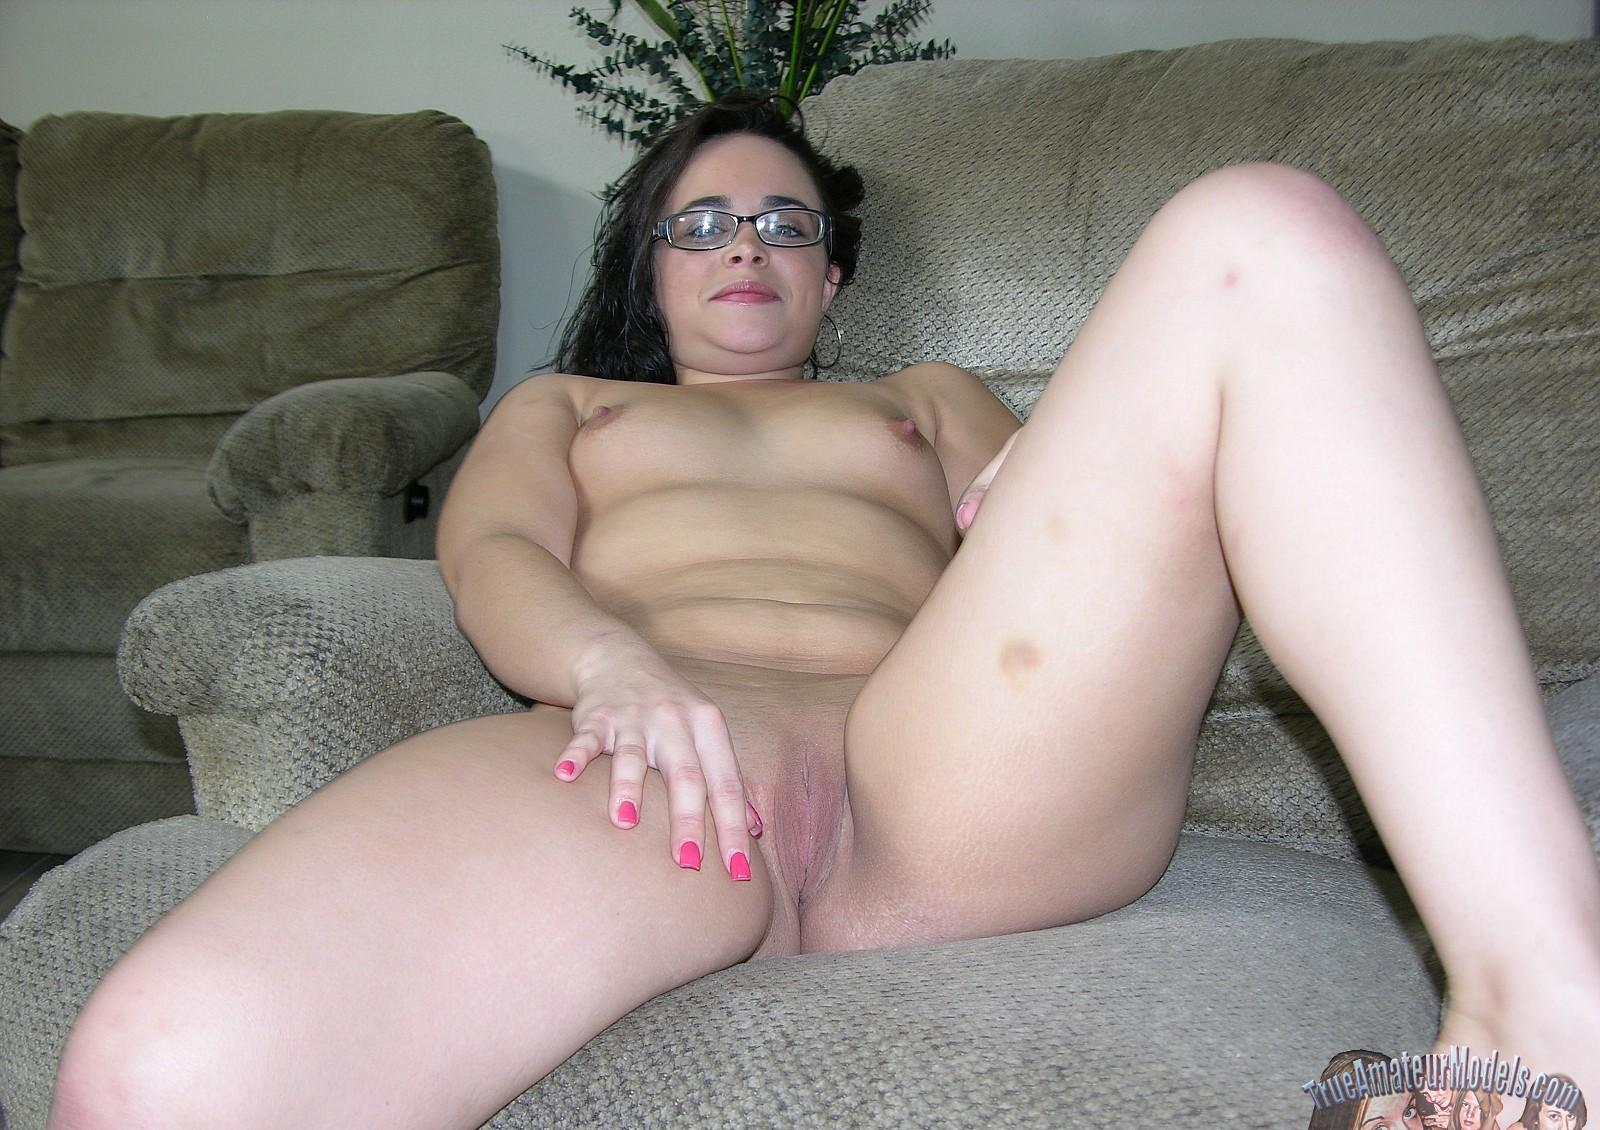 Opinion, interesting Naked ugly girl videos agree, this